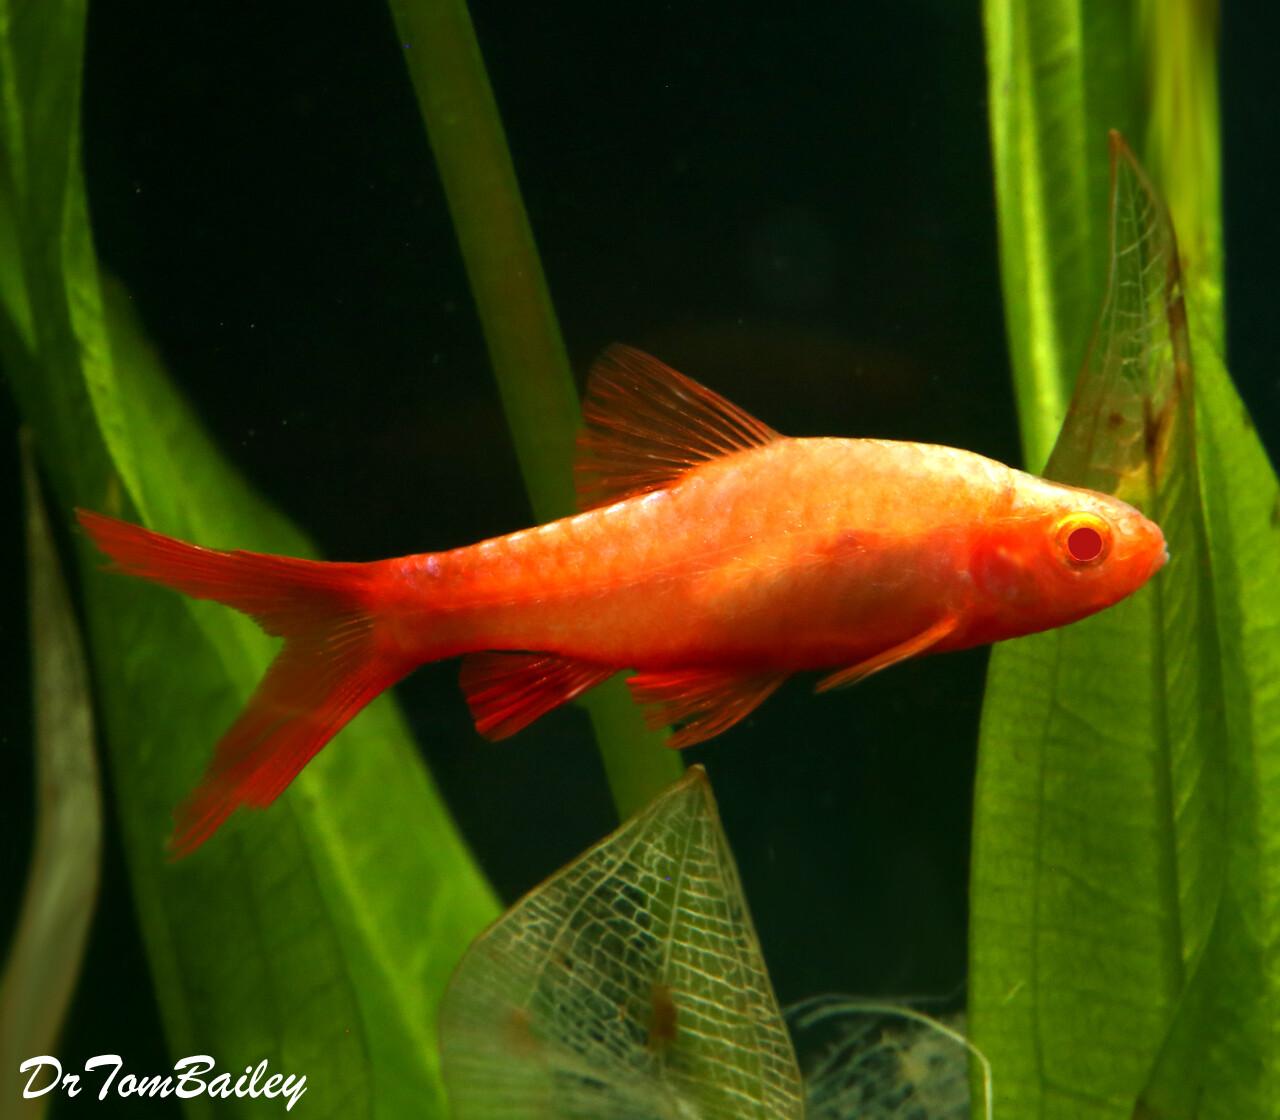 Premium Rare New, Red-Eye Veiltail Cherry Barb, Nano Fish